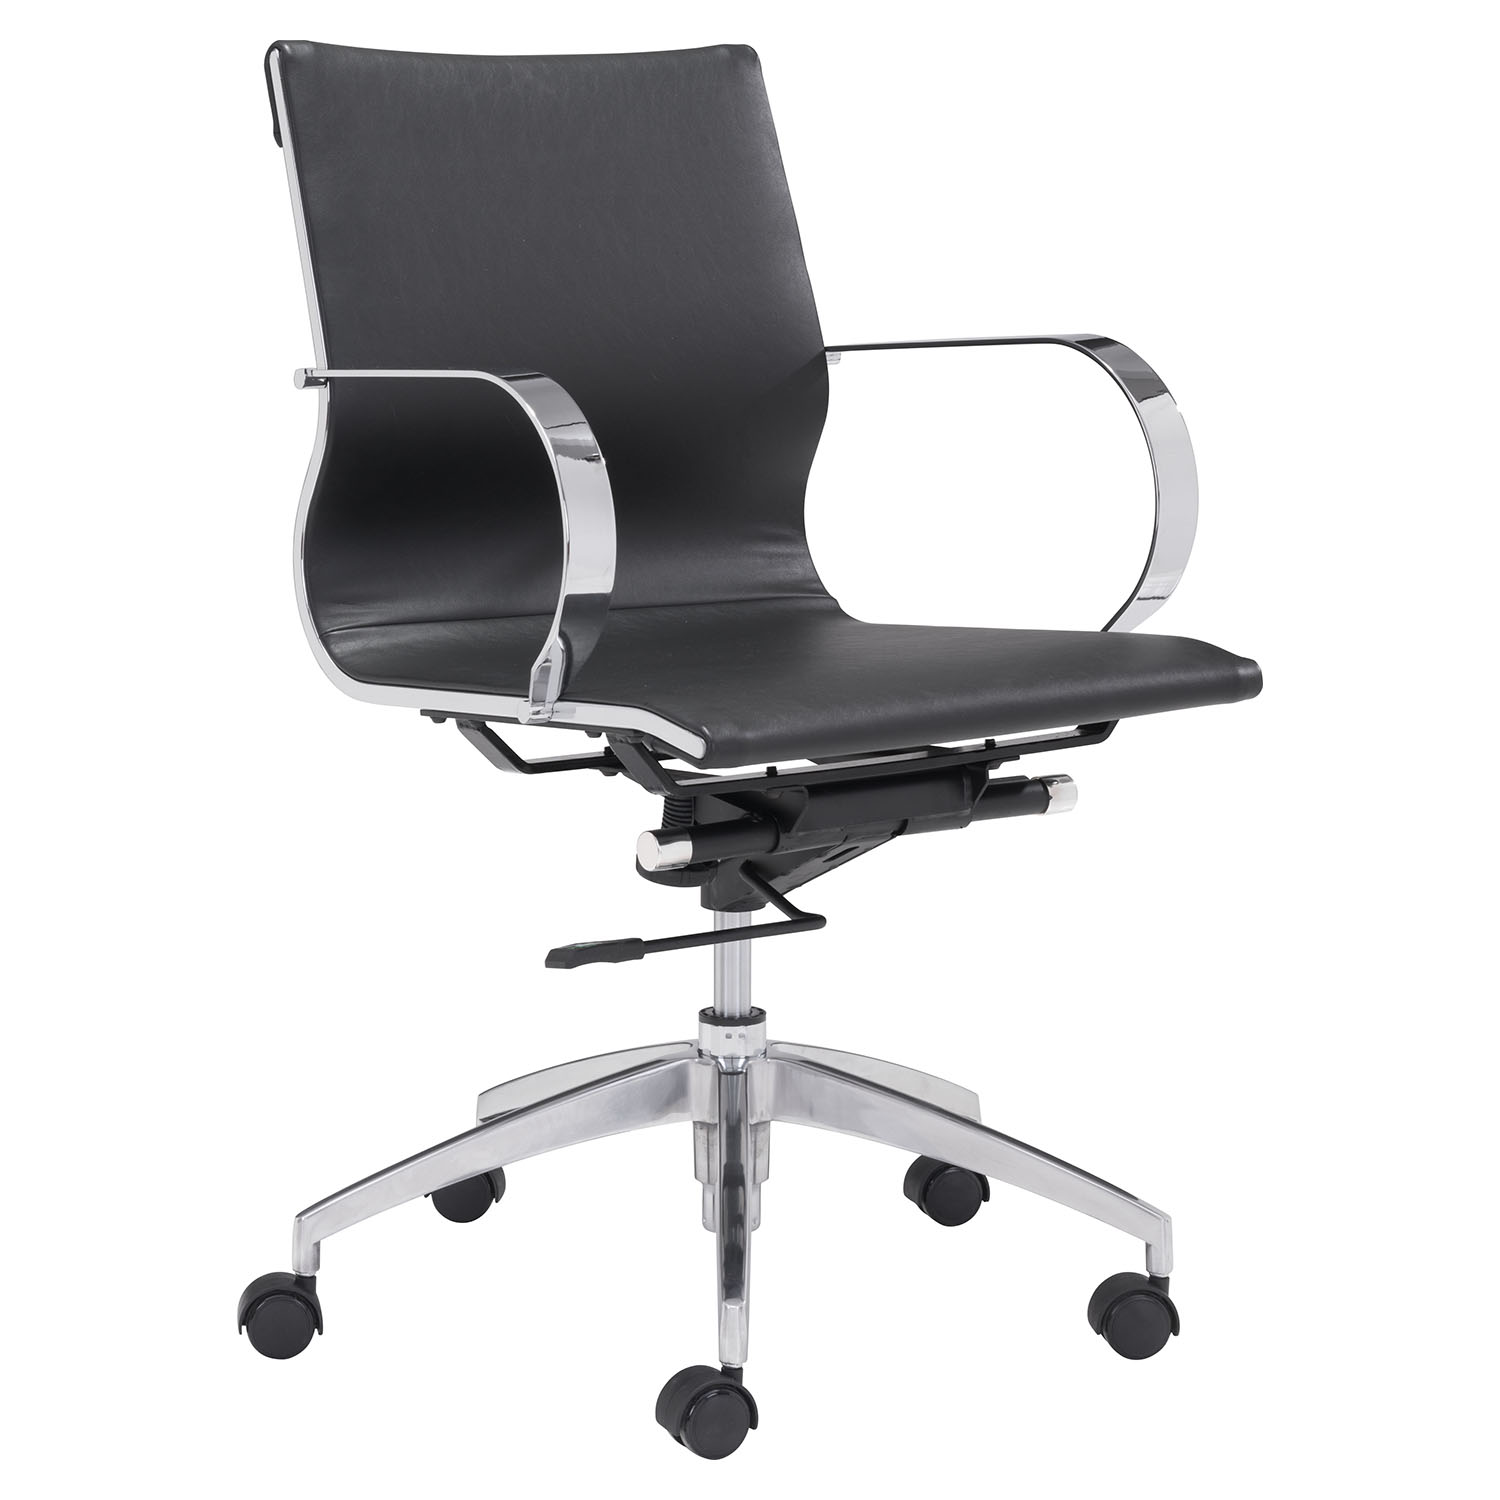 Glider Low Back Office Chair - Black - ZM-100374